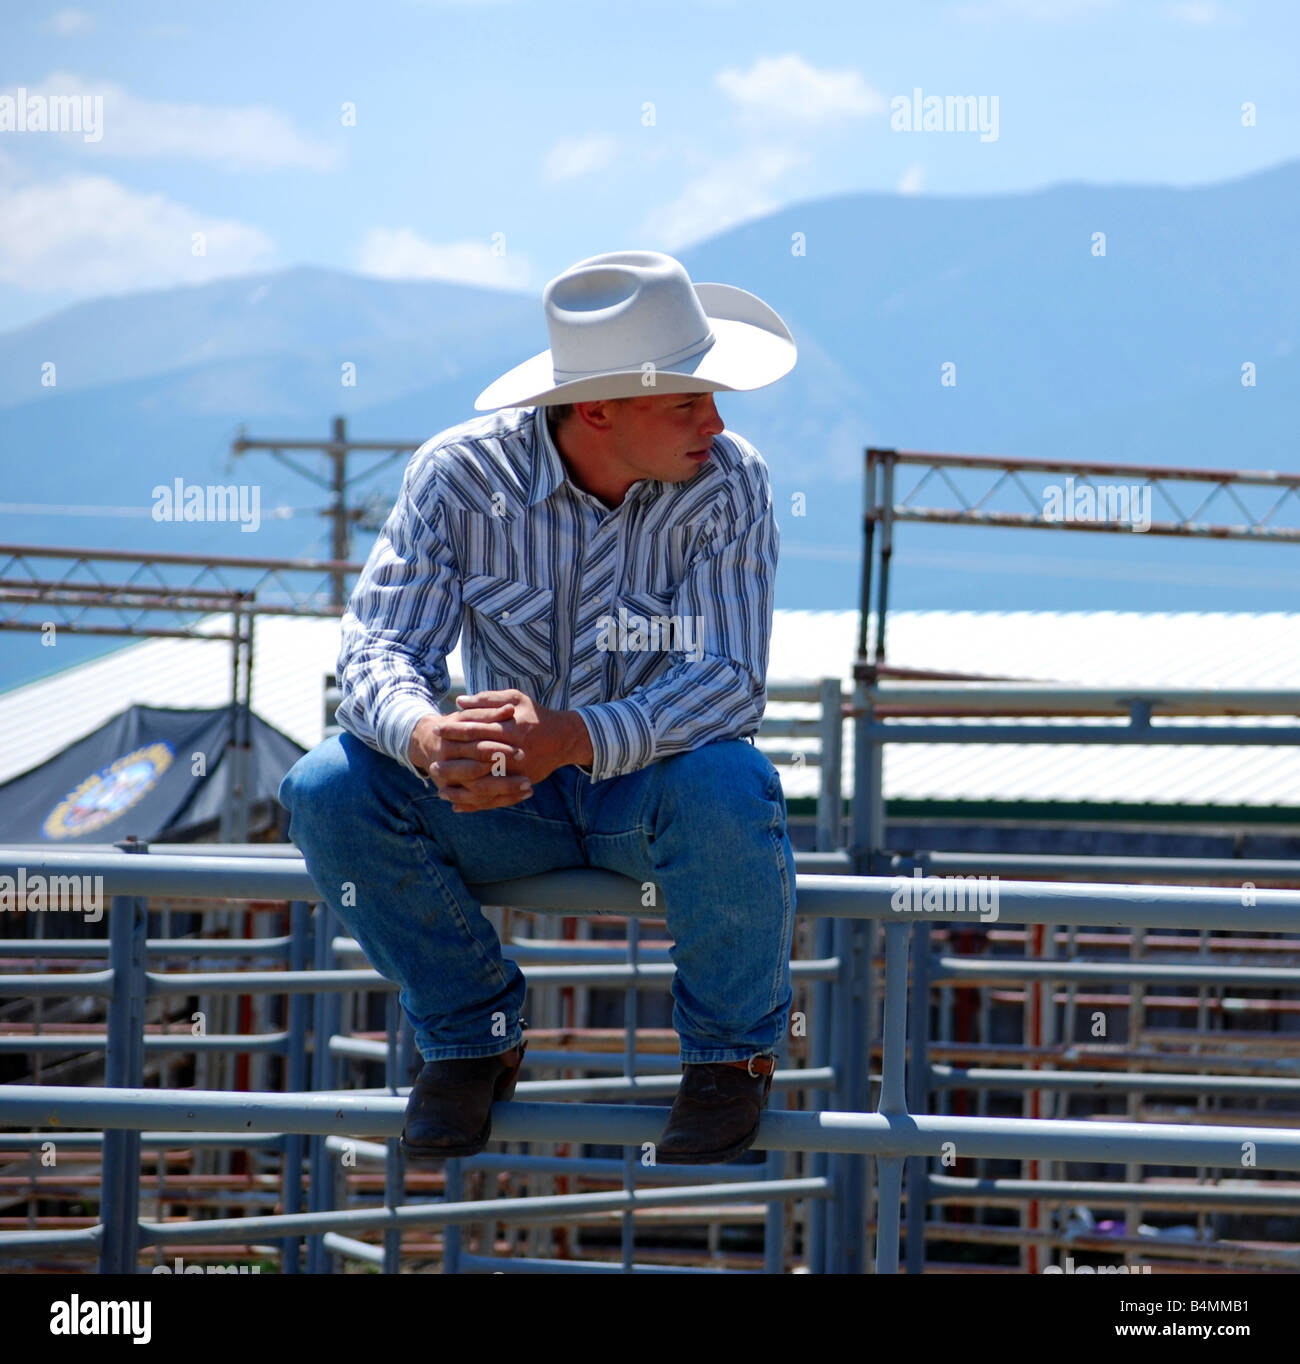 Rodeo cowboy sitting on the rails of a pen - Stock Image